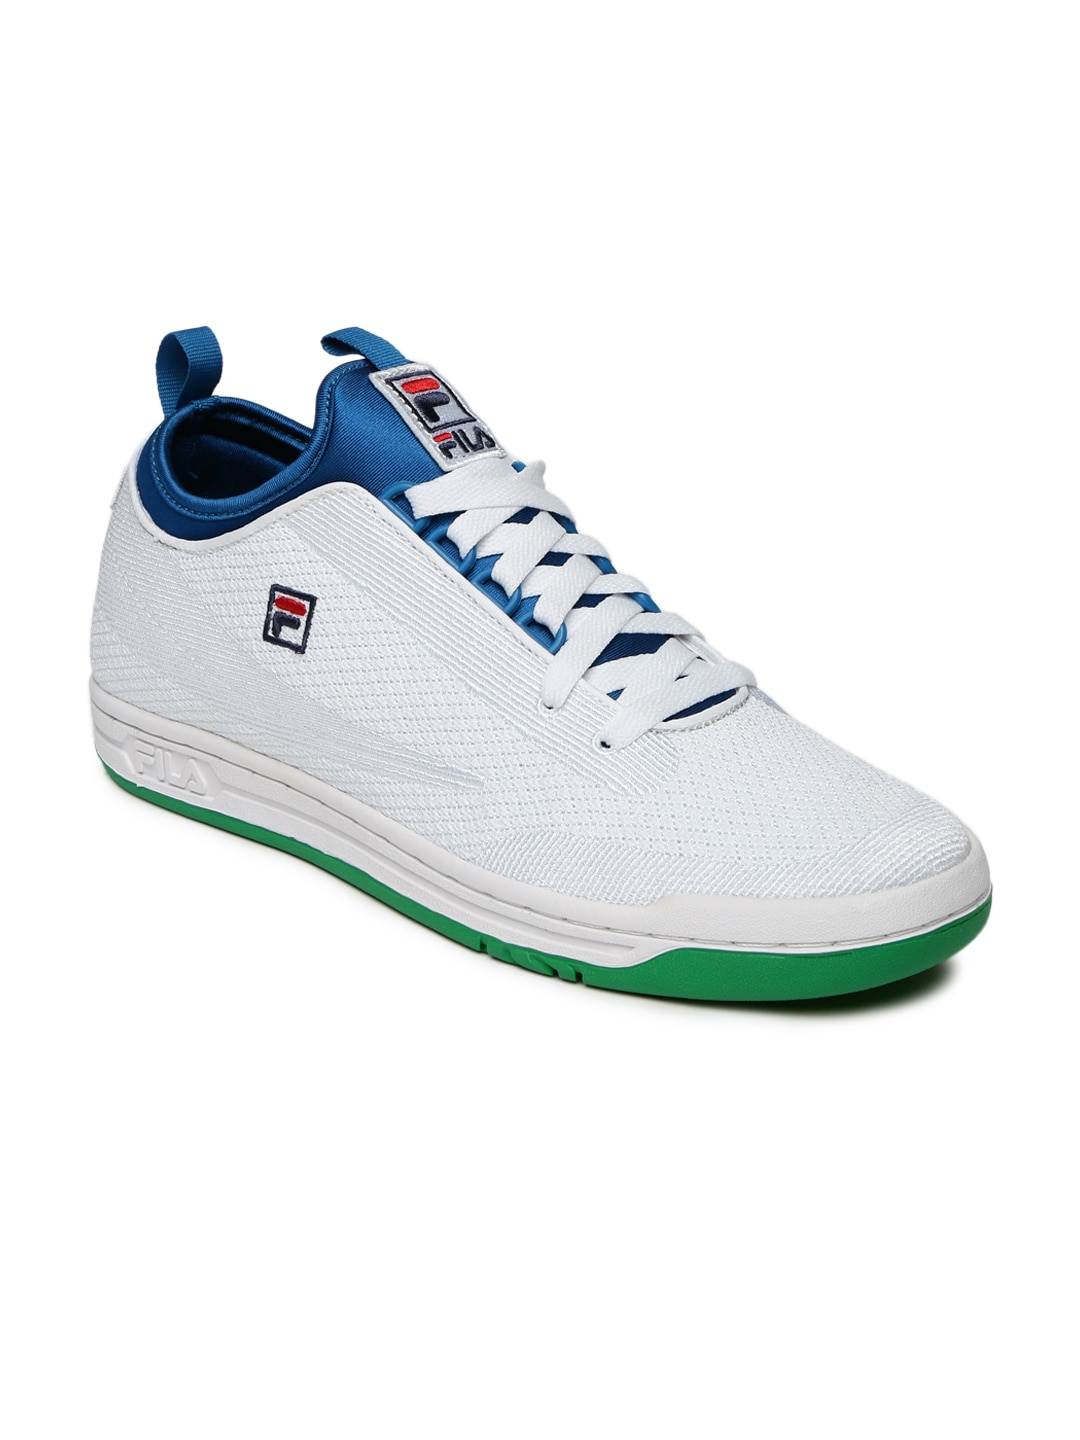 8ff26afa1be9 White Fila Shoes Casual - Buy White Fila Shoes Casual online in India